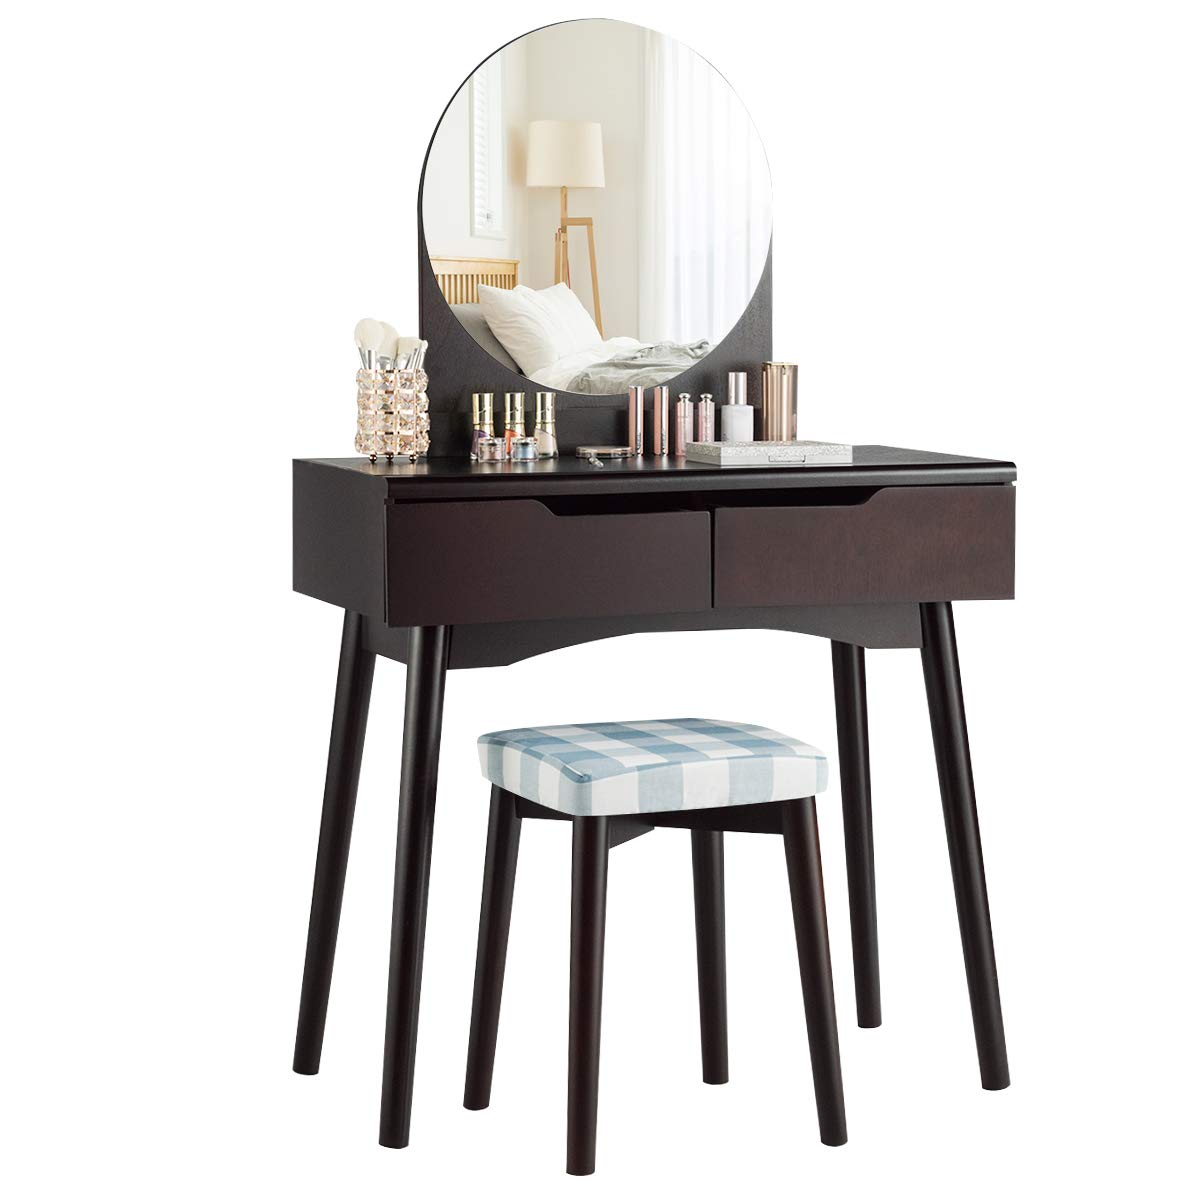 CHARMAID Vanity Set with Round Mirror and 2 Organized Sliding Drawers, Makeup Dressing Table with Thick Cushioned Stool, Tilting Preventing Device, Bedroom Makeup Vanity Set Brown